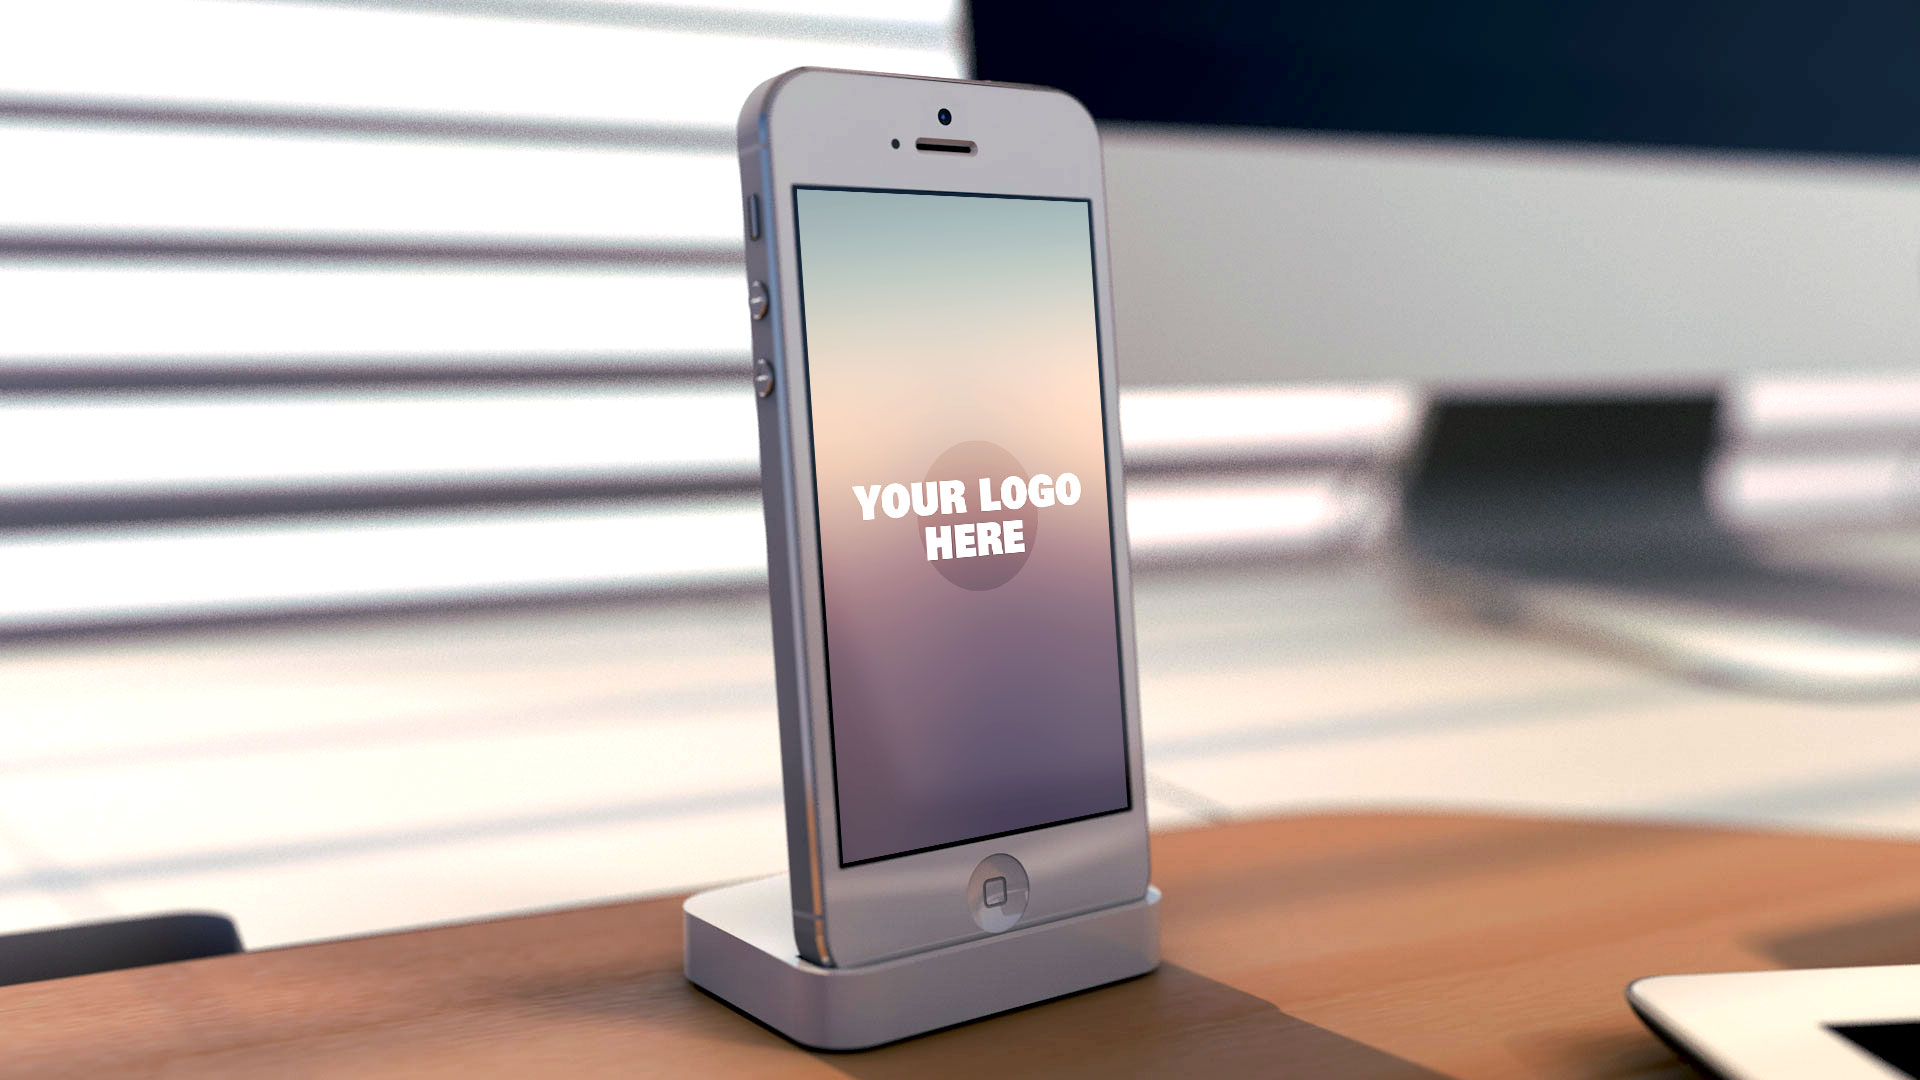 put your logo or image on iPhone 6